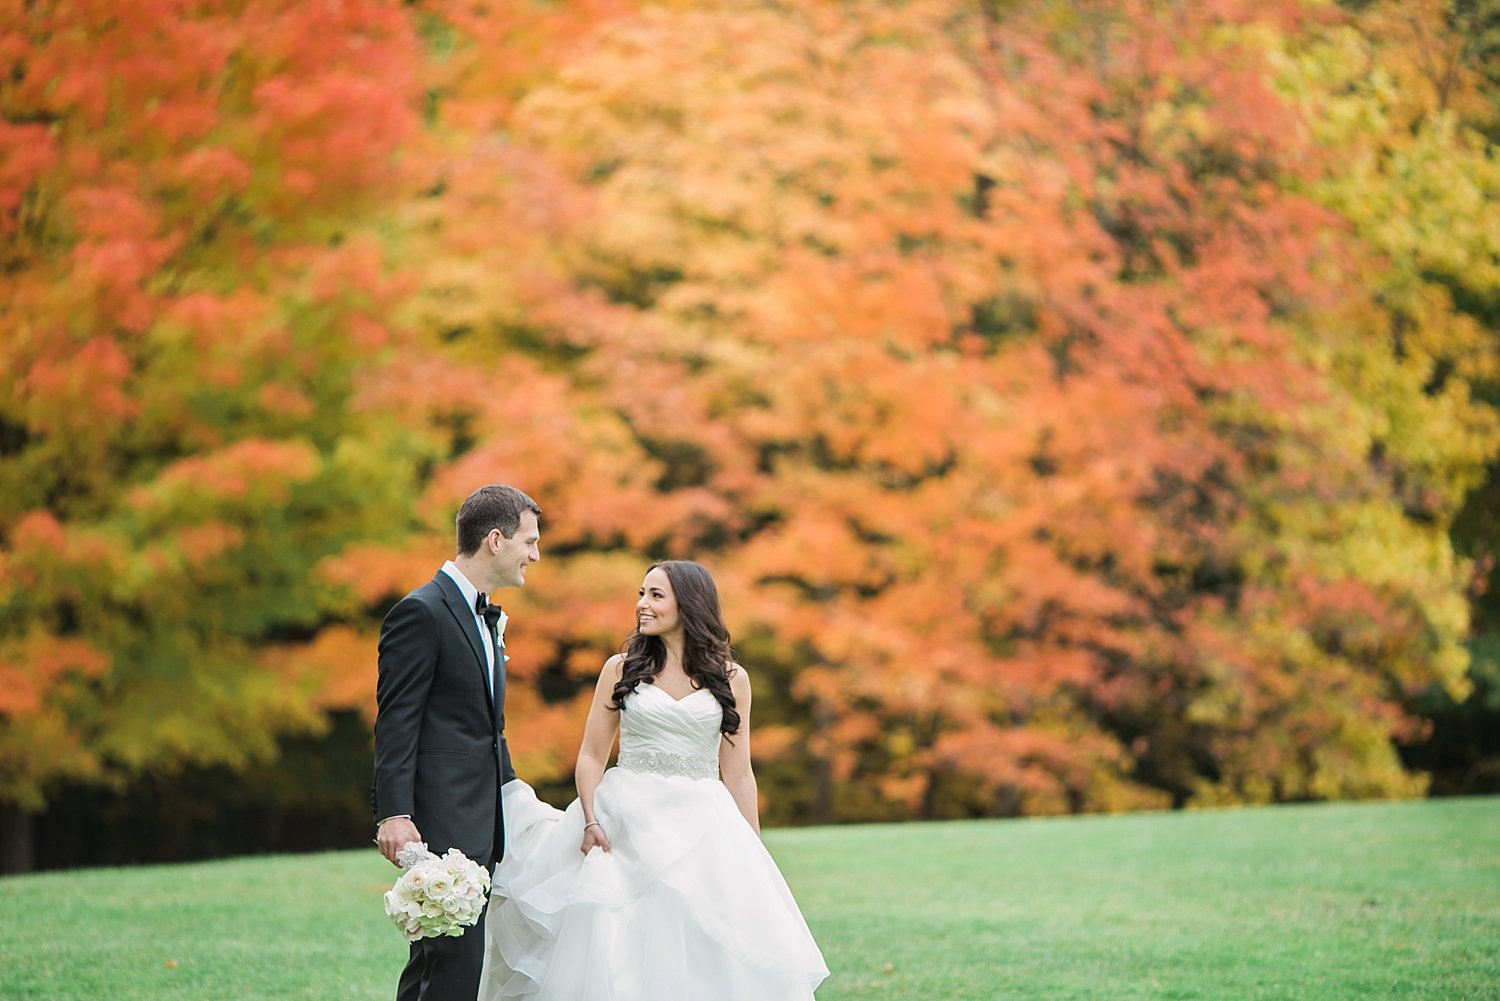 nyc-wedding-photography-nj-tri-state-cinematography-intothestory-by-moo-jae_0347.jpg